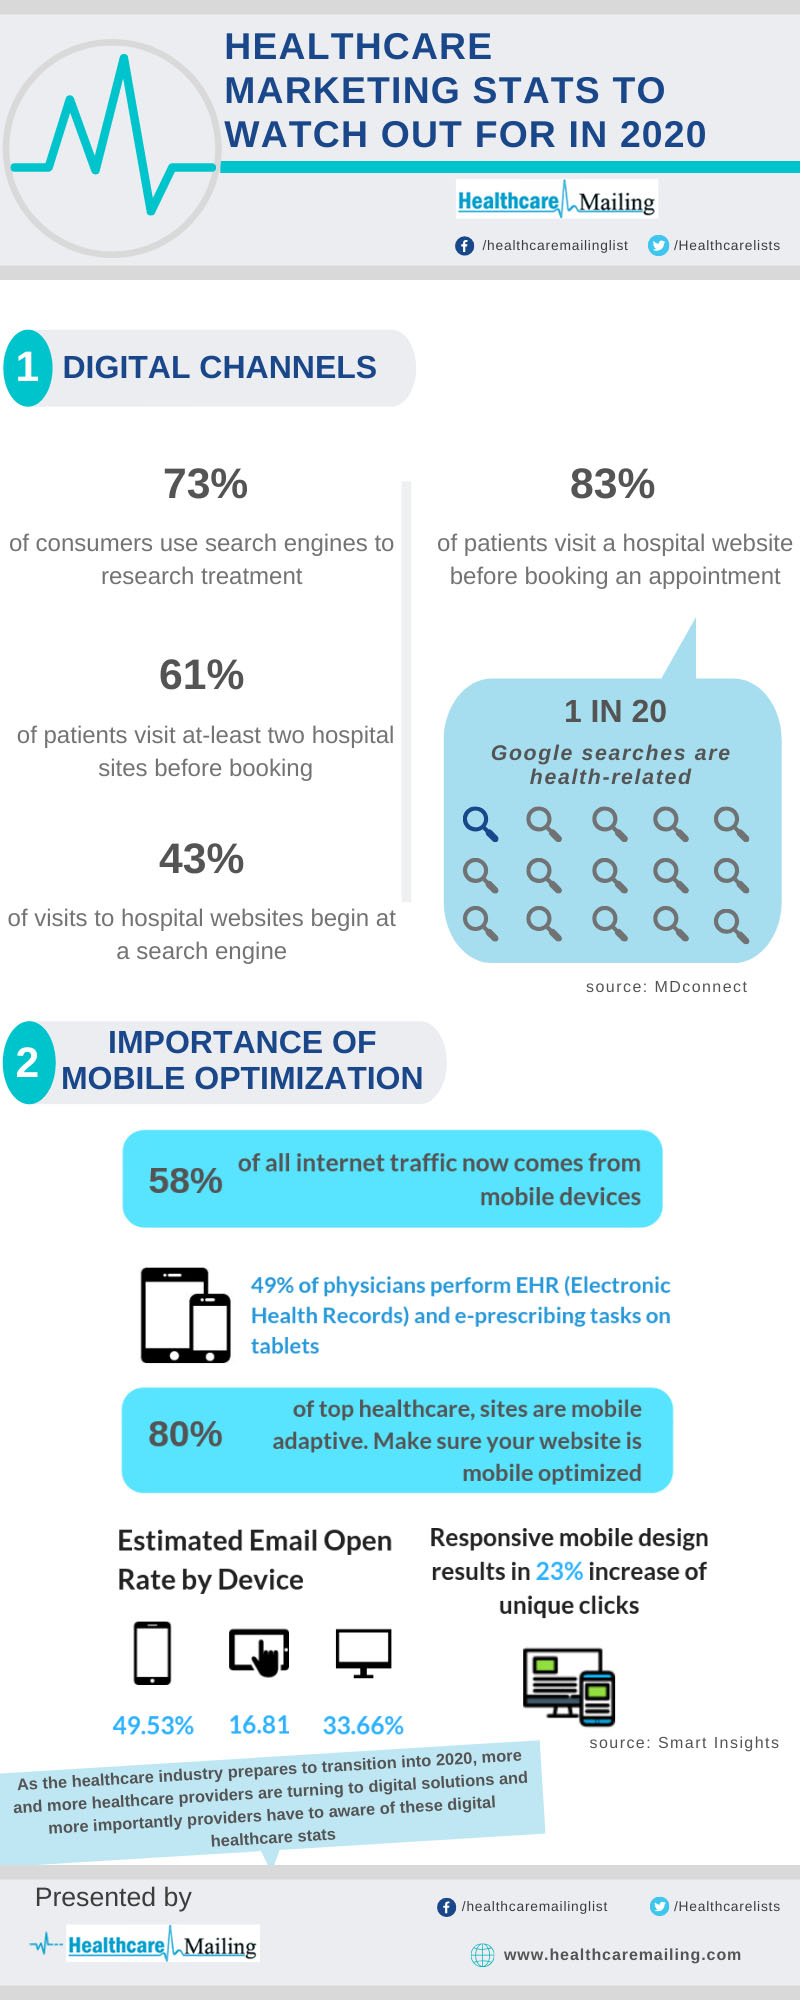 Healthcare Marketing Stats To Watch Out For In 2020